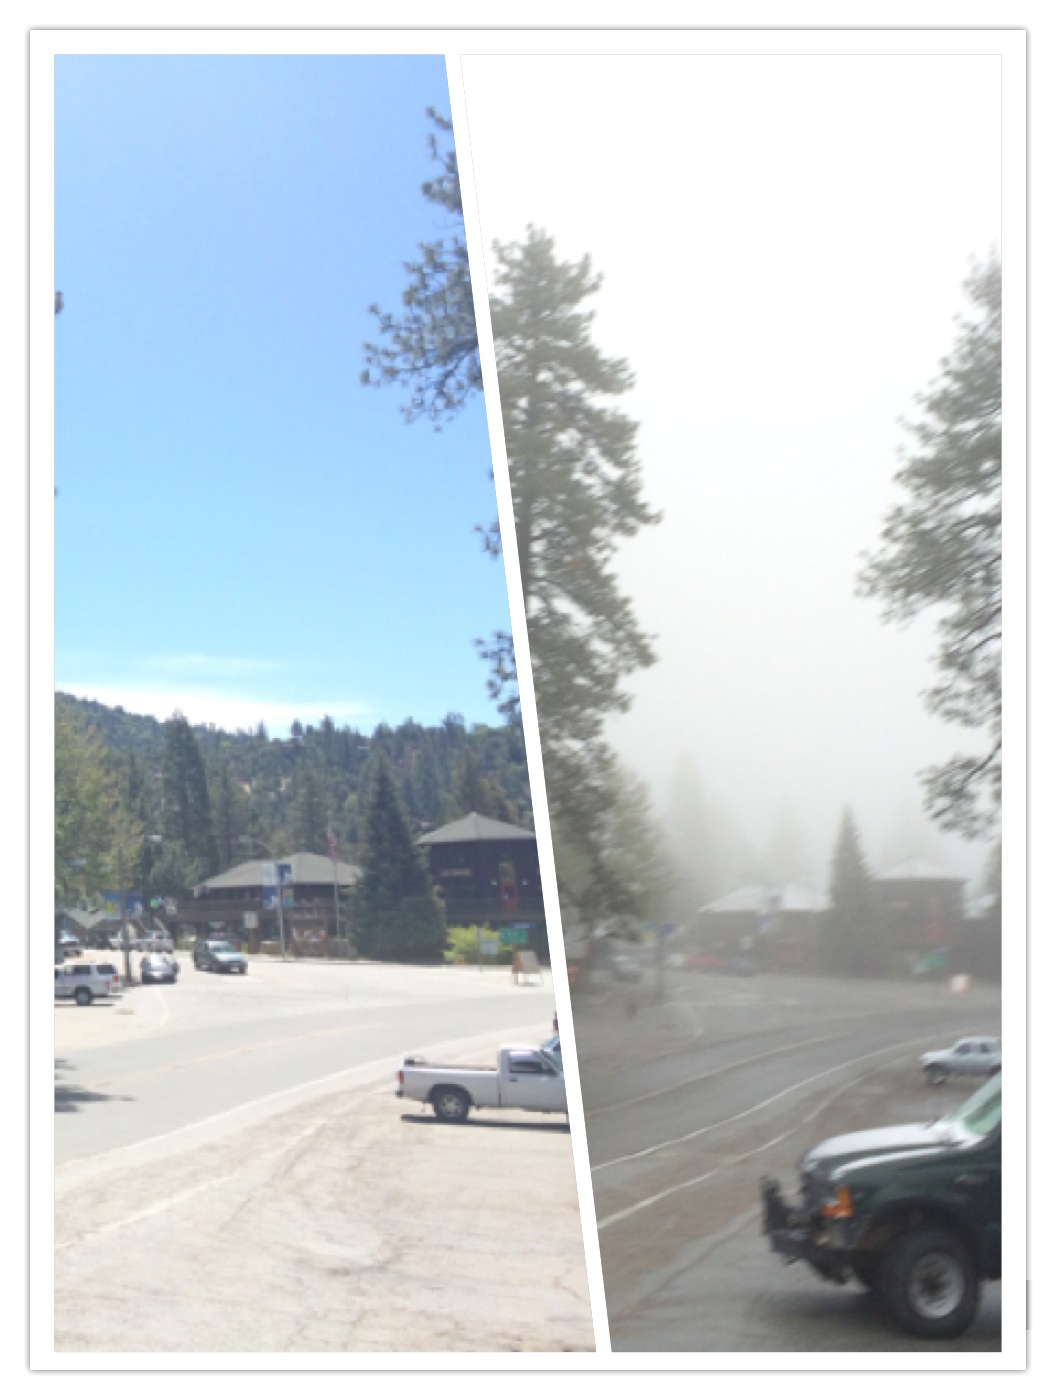 Highlighting the difference a day can make for mountain weather.